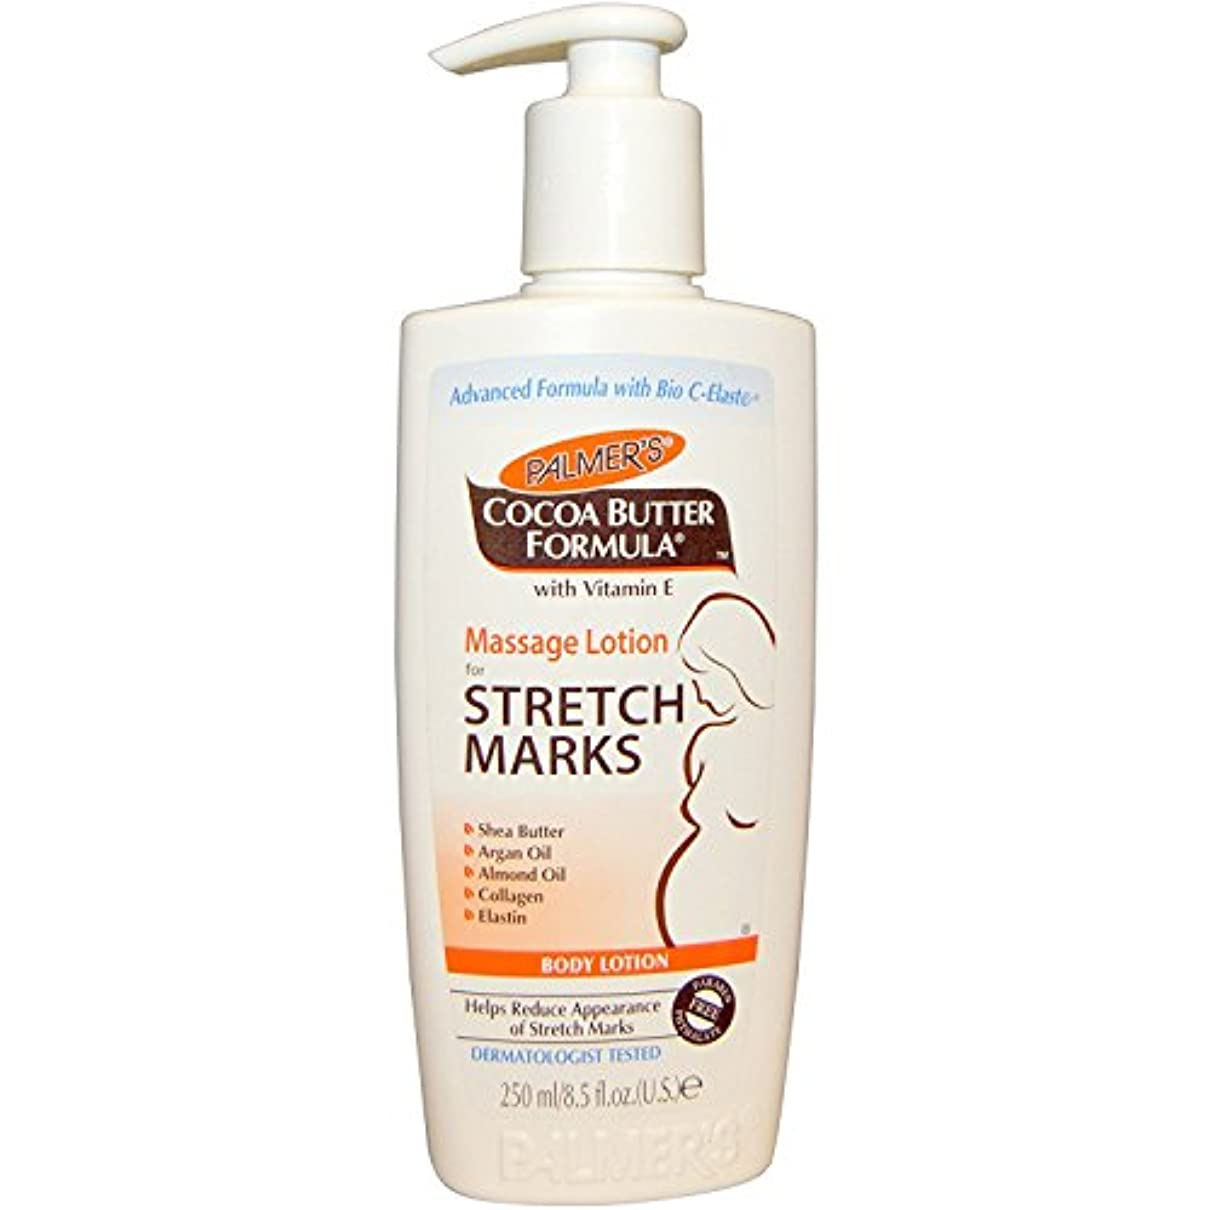 役職抜け目のない革新Palmer's Cocoa Butter Formula Massage Lotion For Stretch Marks with Vitamin E and Shea Butter Women Body Lotion...